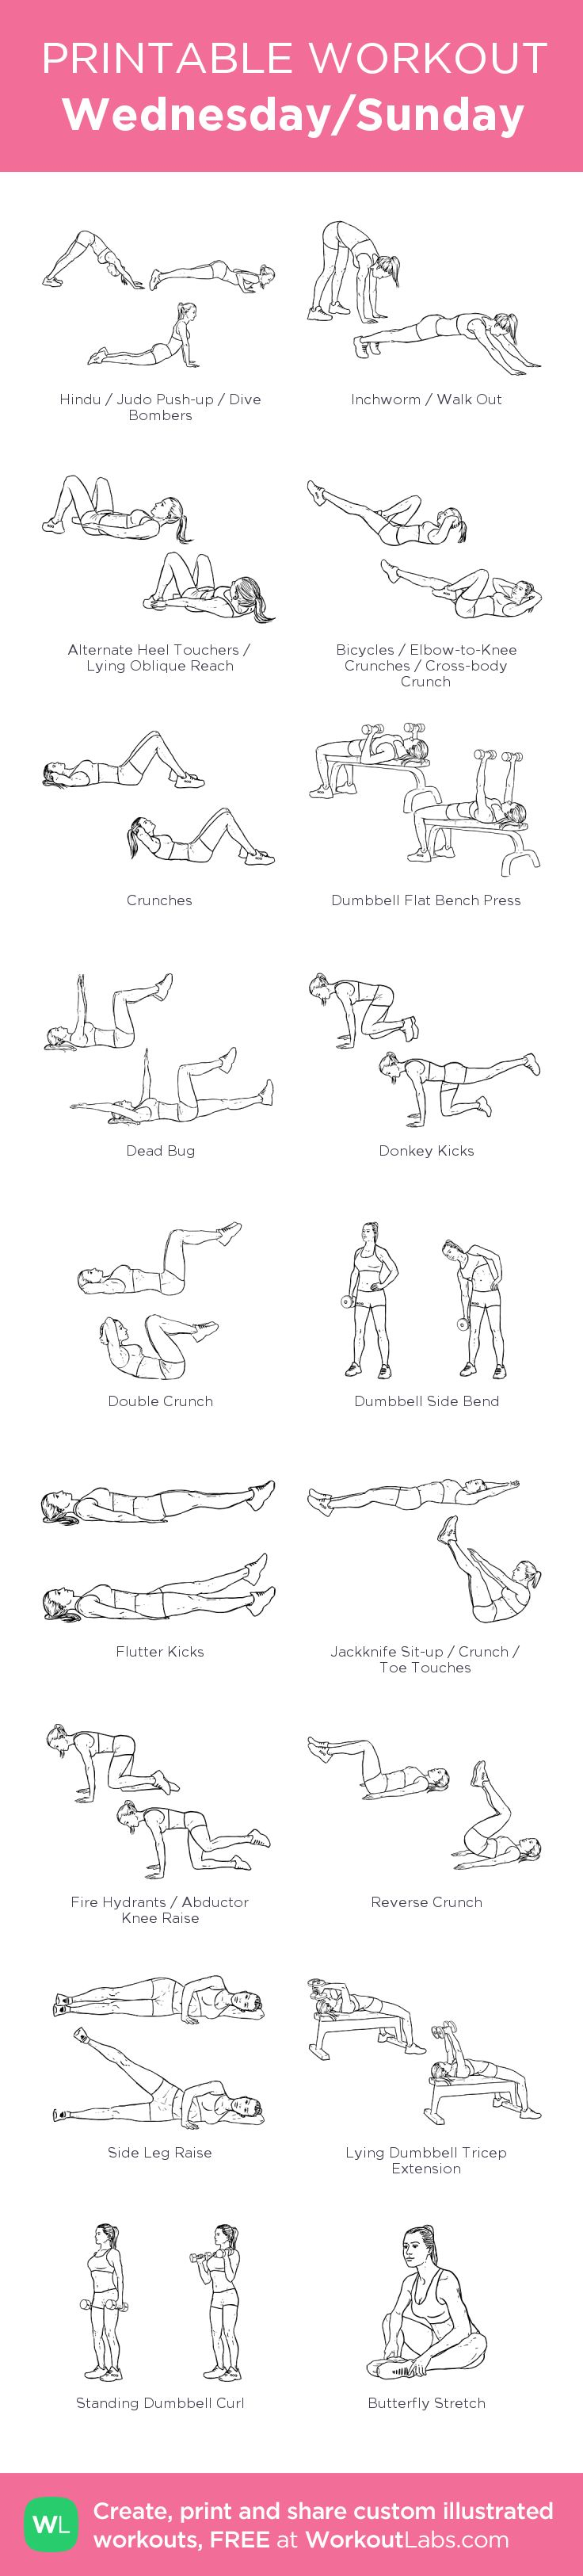 Wednesday/Sunday:my visual workout created at WorkoutLabs.com • Click through to customize and download as a FREE PDF! #customworkout